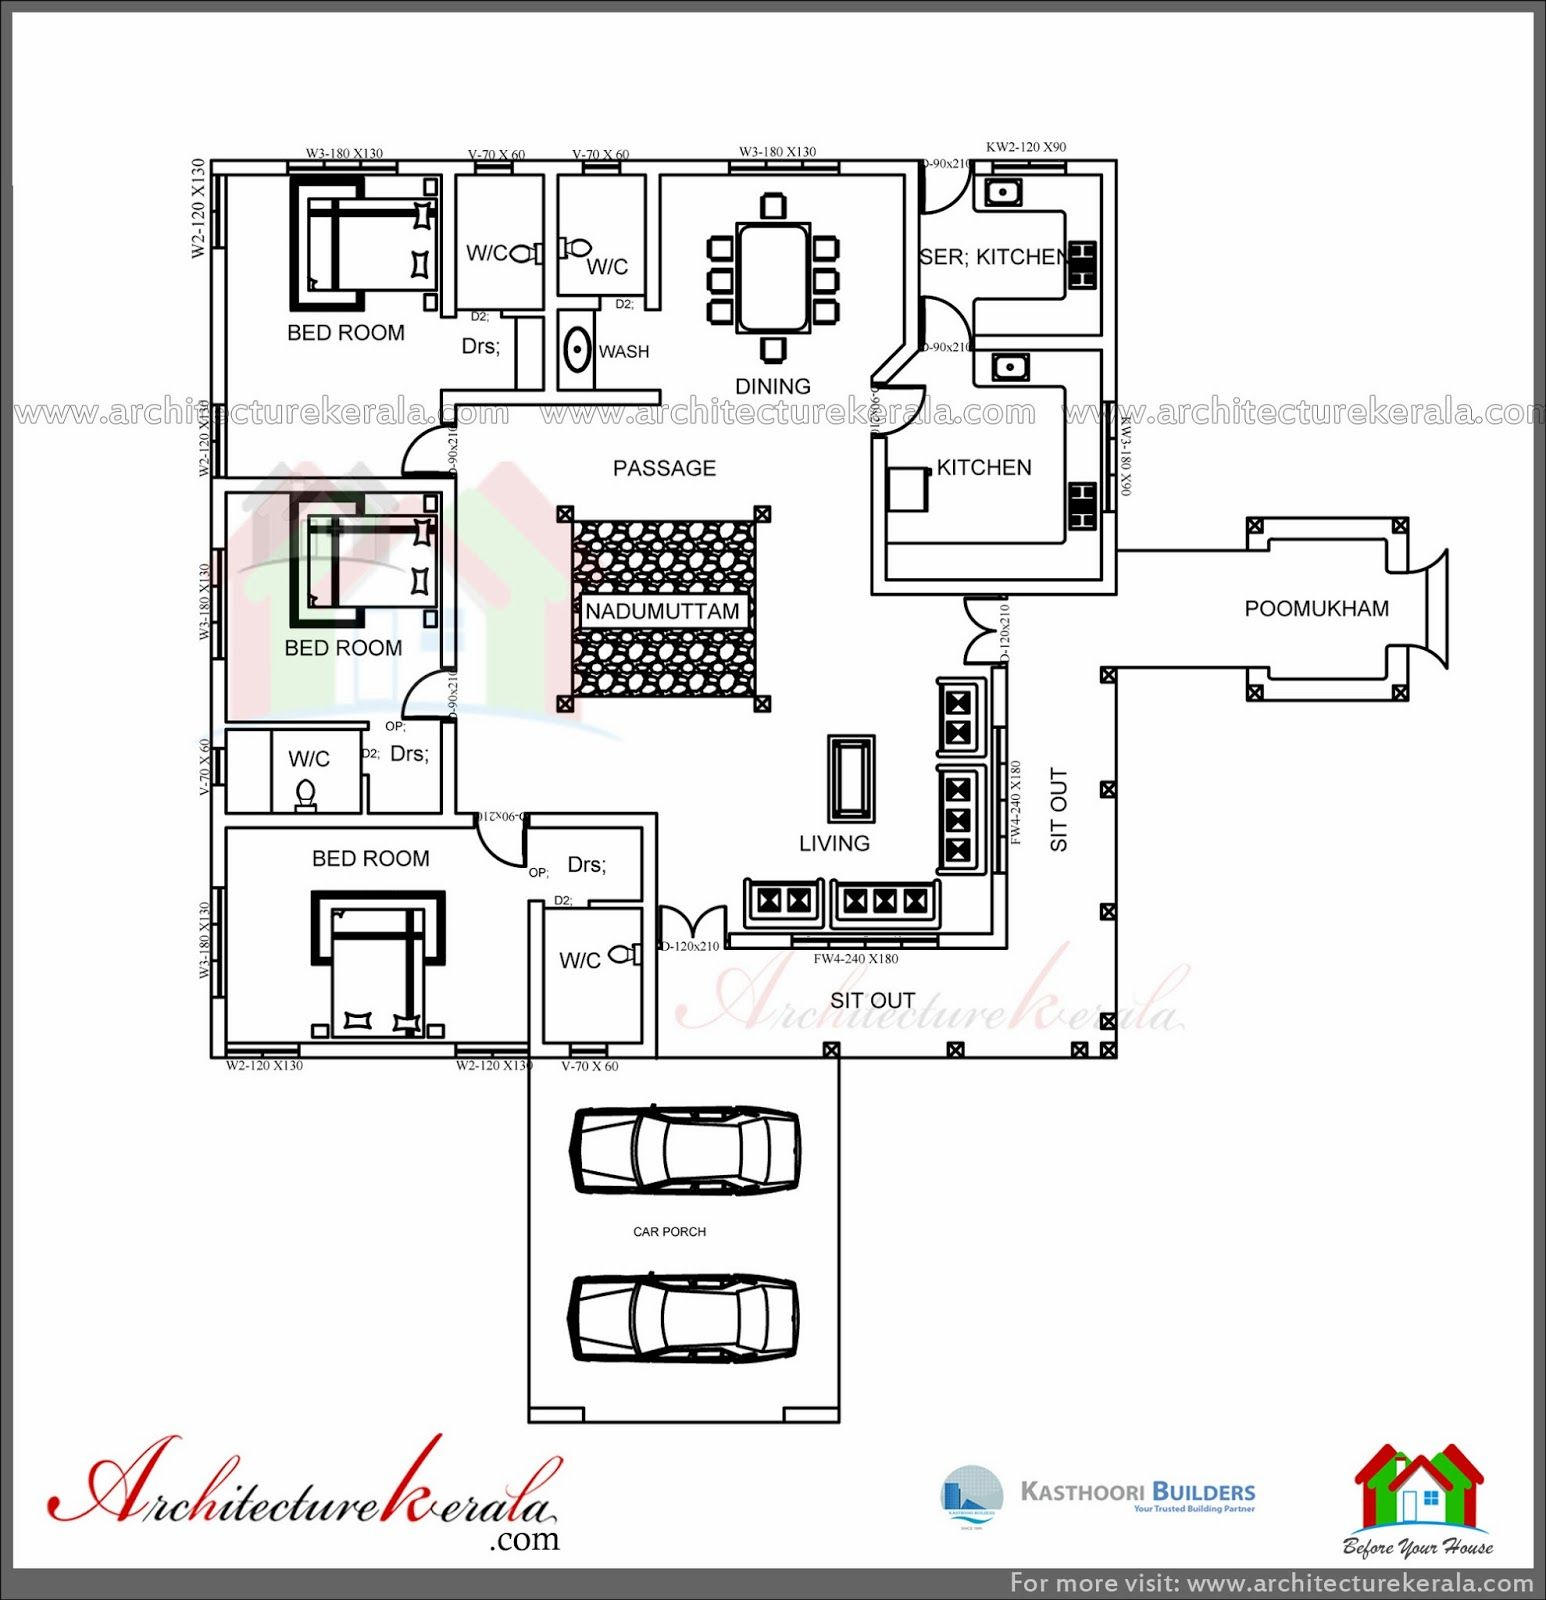 Architecture kerala traditional house plan with for Traditional indian house designs